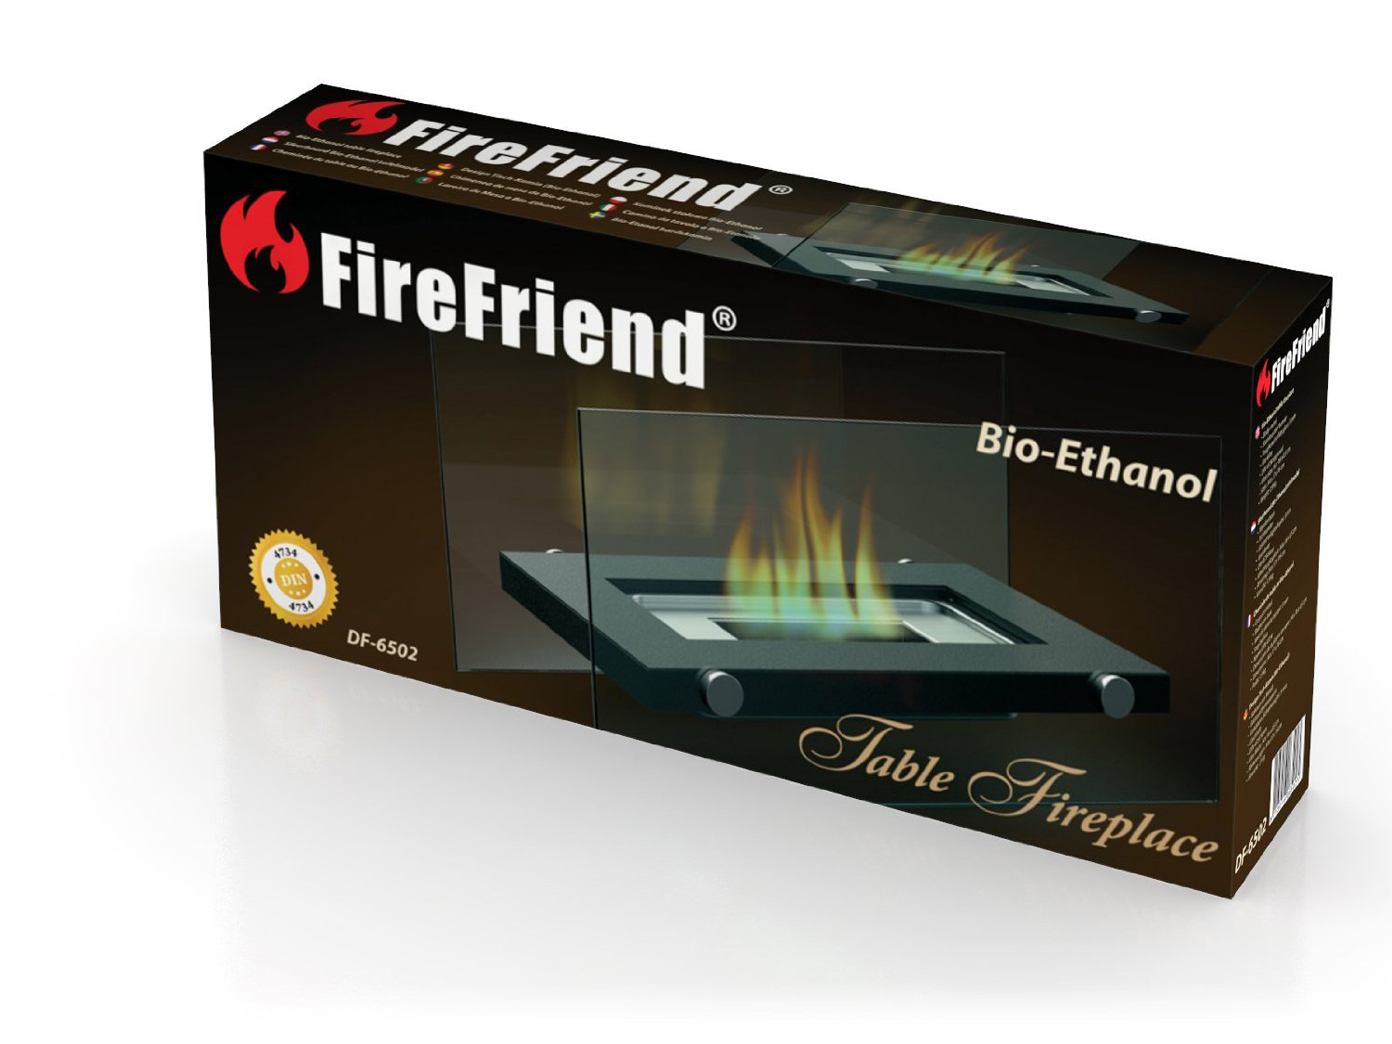 design tischkamin f r bio ethanol 34x17cm tischfeuer. Black Bedroom Furniture Sets. Home Design Ideas